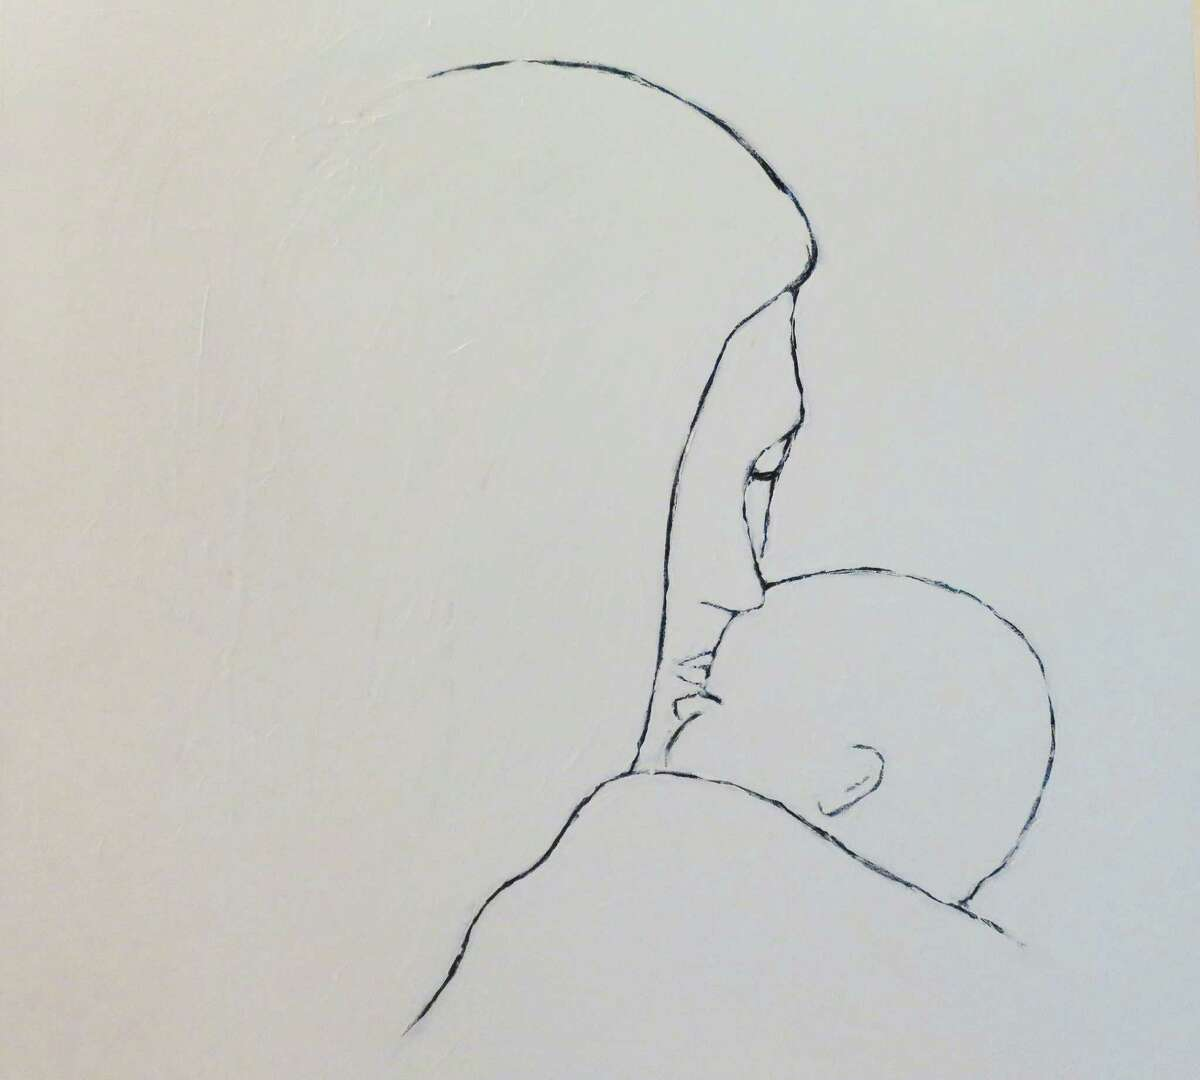 """""""Embrace,"""" is an example of the clean and spare lines used by Greenwich artist Fereshteh Priou in her work, pieces of which are on display through Thursday, Oct. 15, at Les Beaux Arts Gallery in Greenwich."""